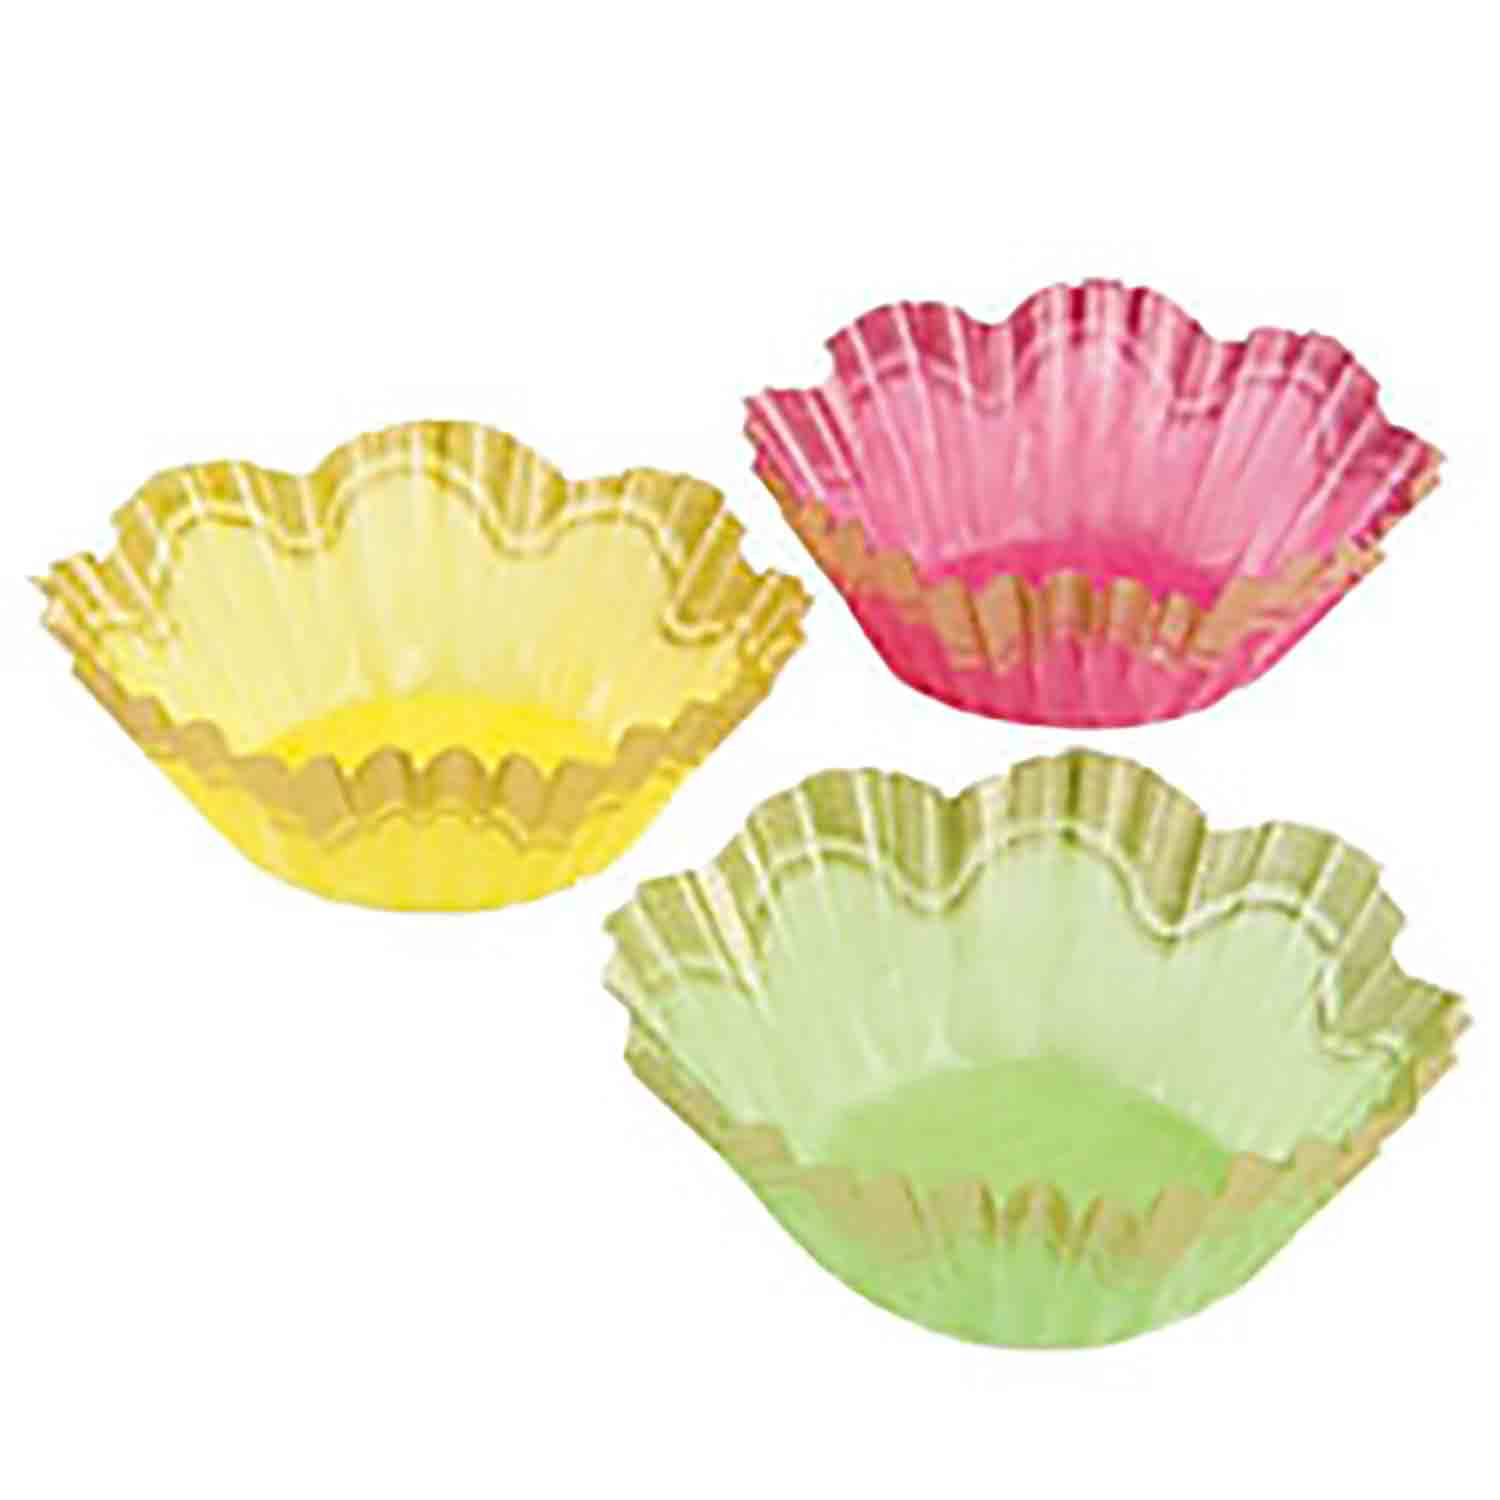 "Petit Four Cups - 1 1/8"" base"